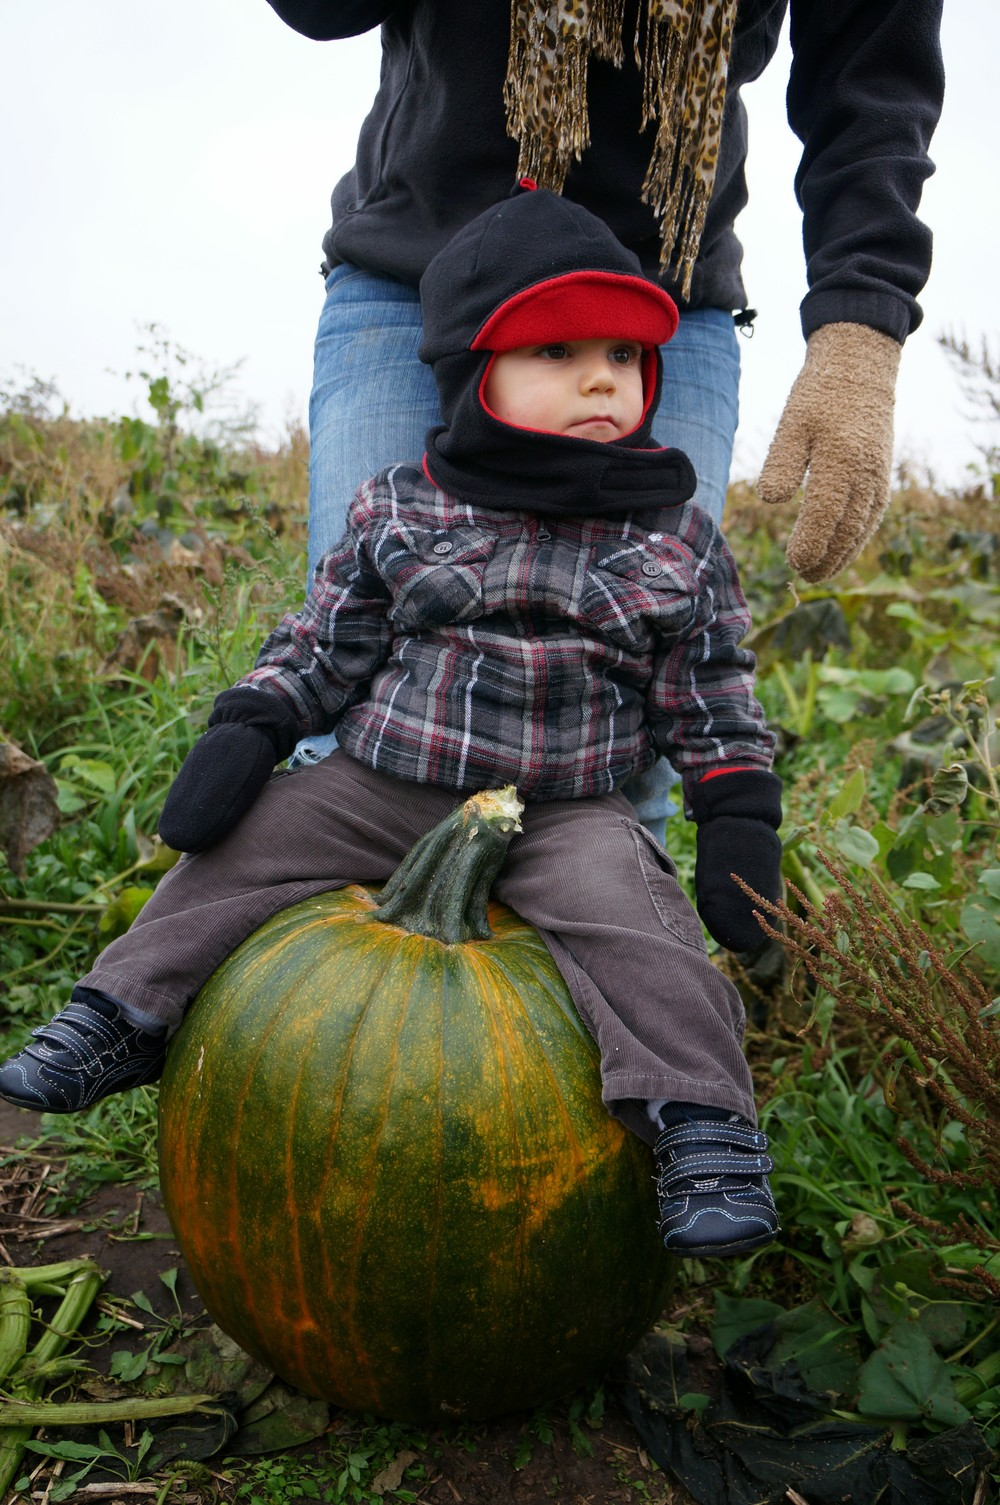 Ryker riding a pumpkin